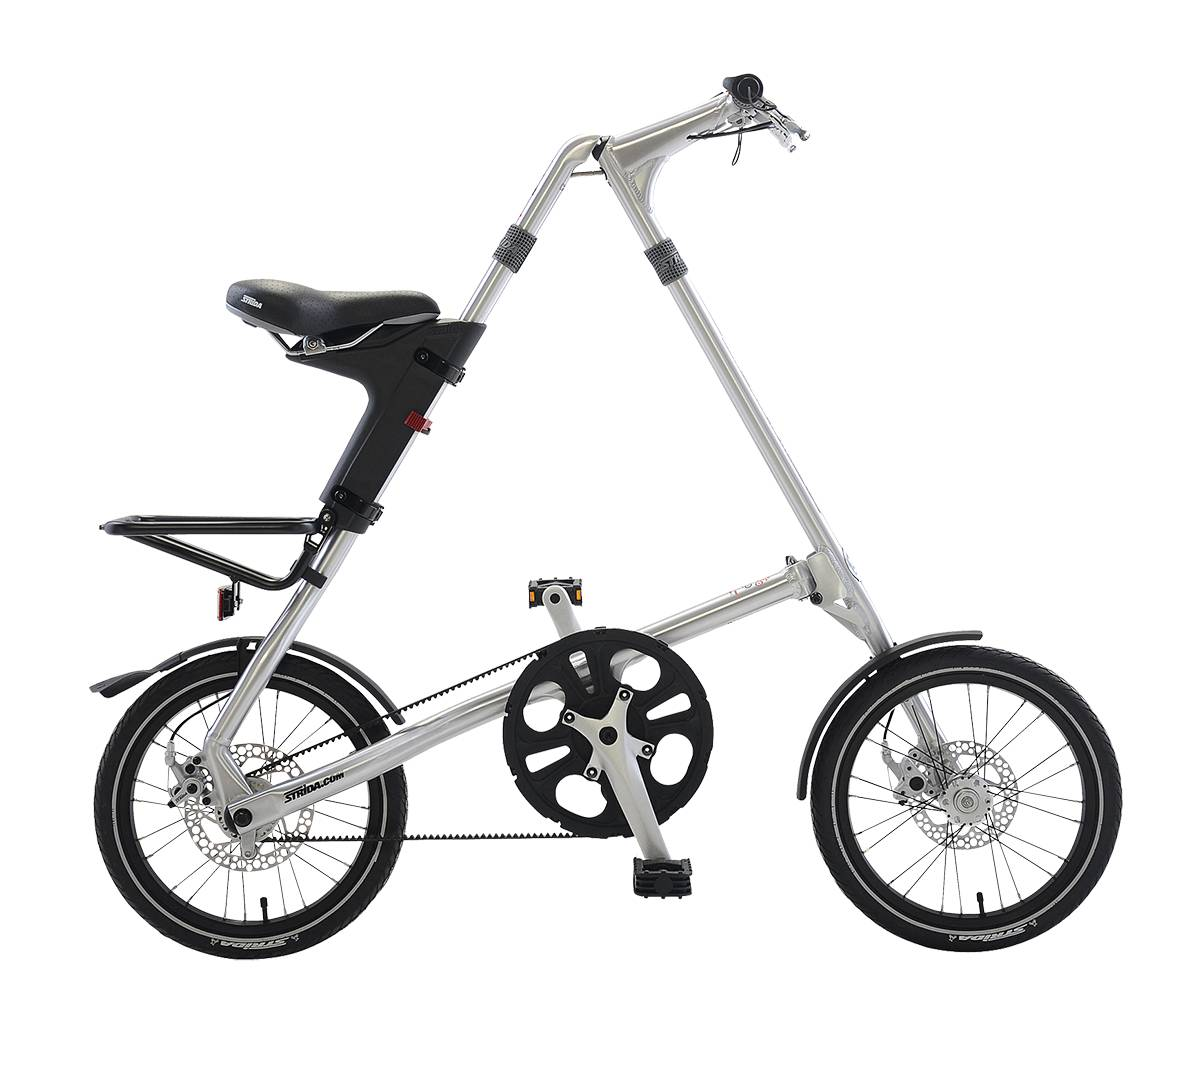 STRiDA 5.0 Folding Urban Bicycle